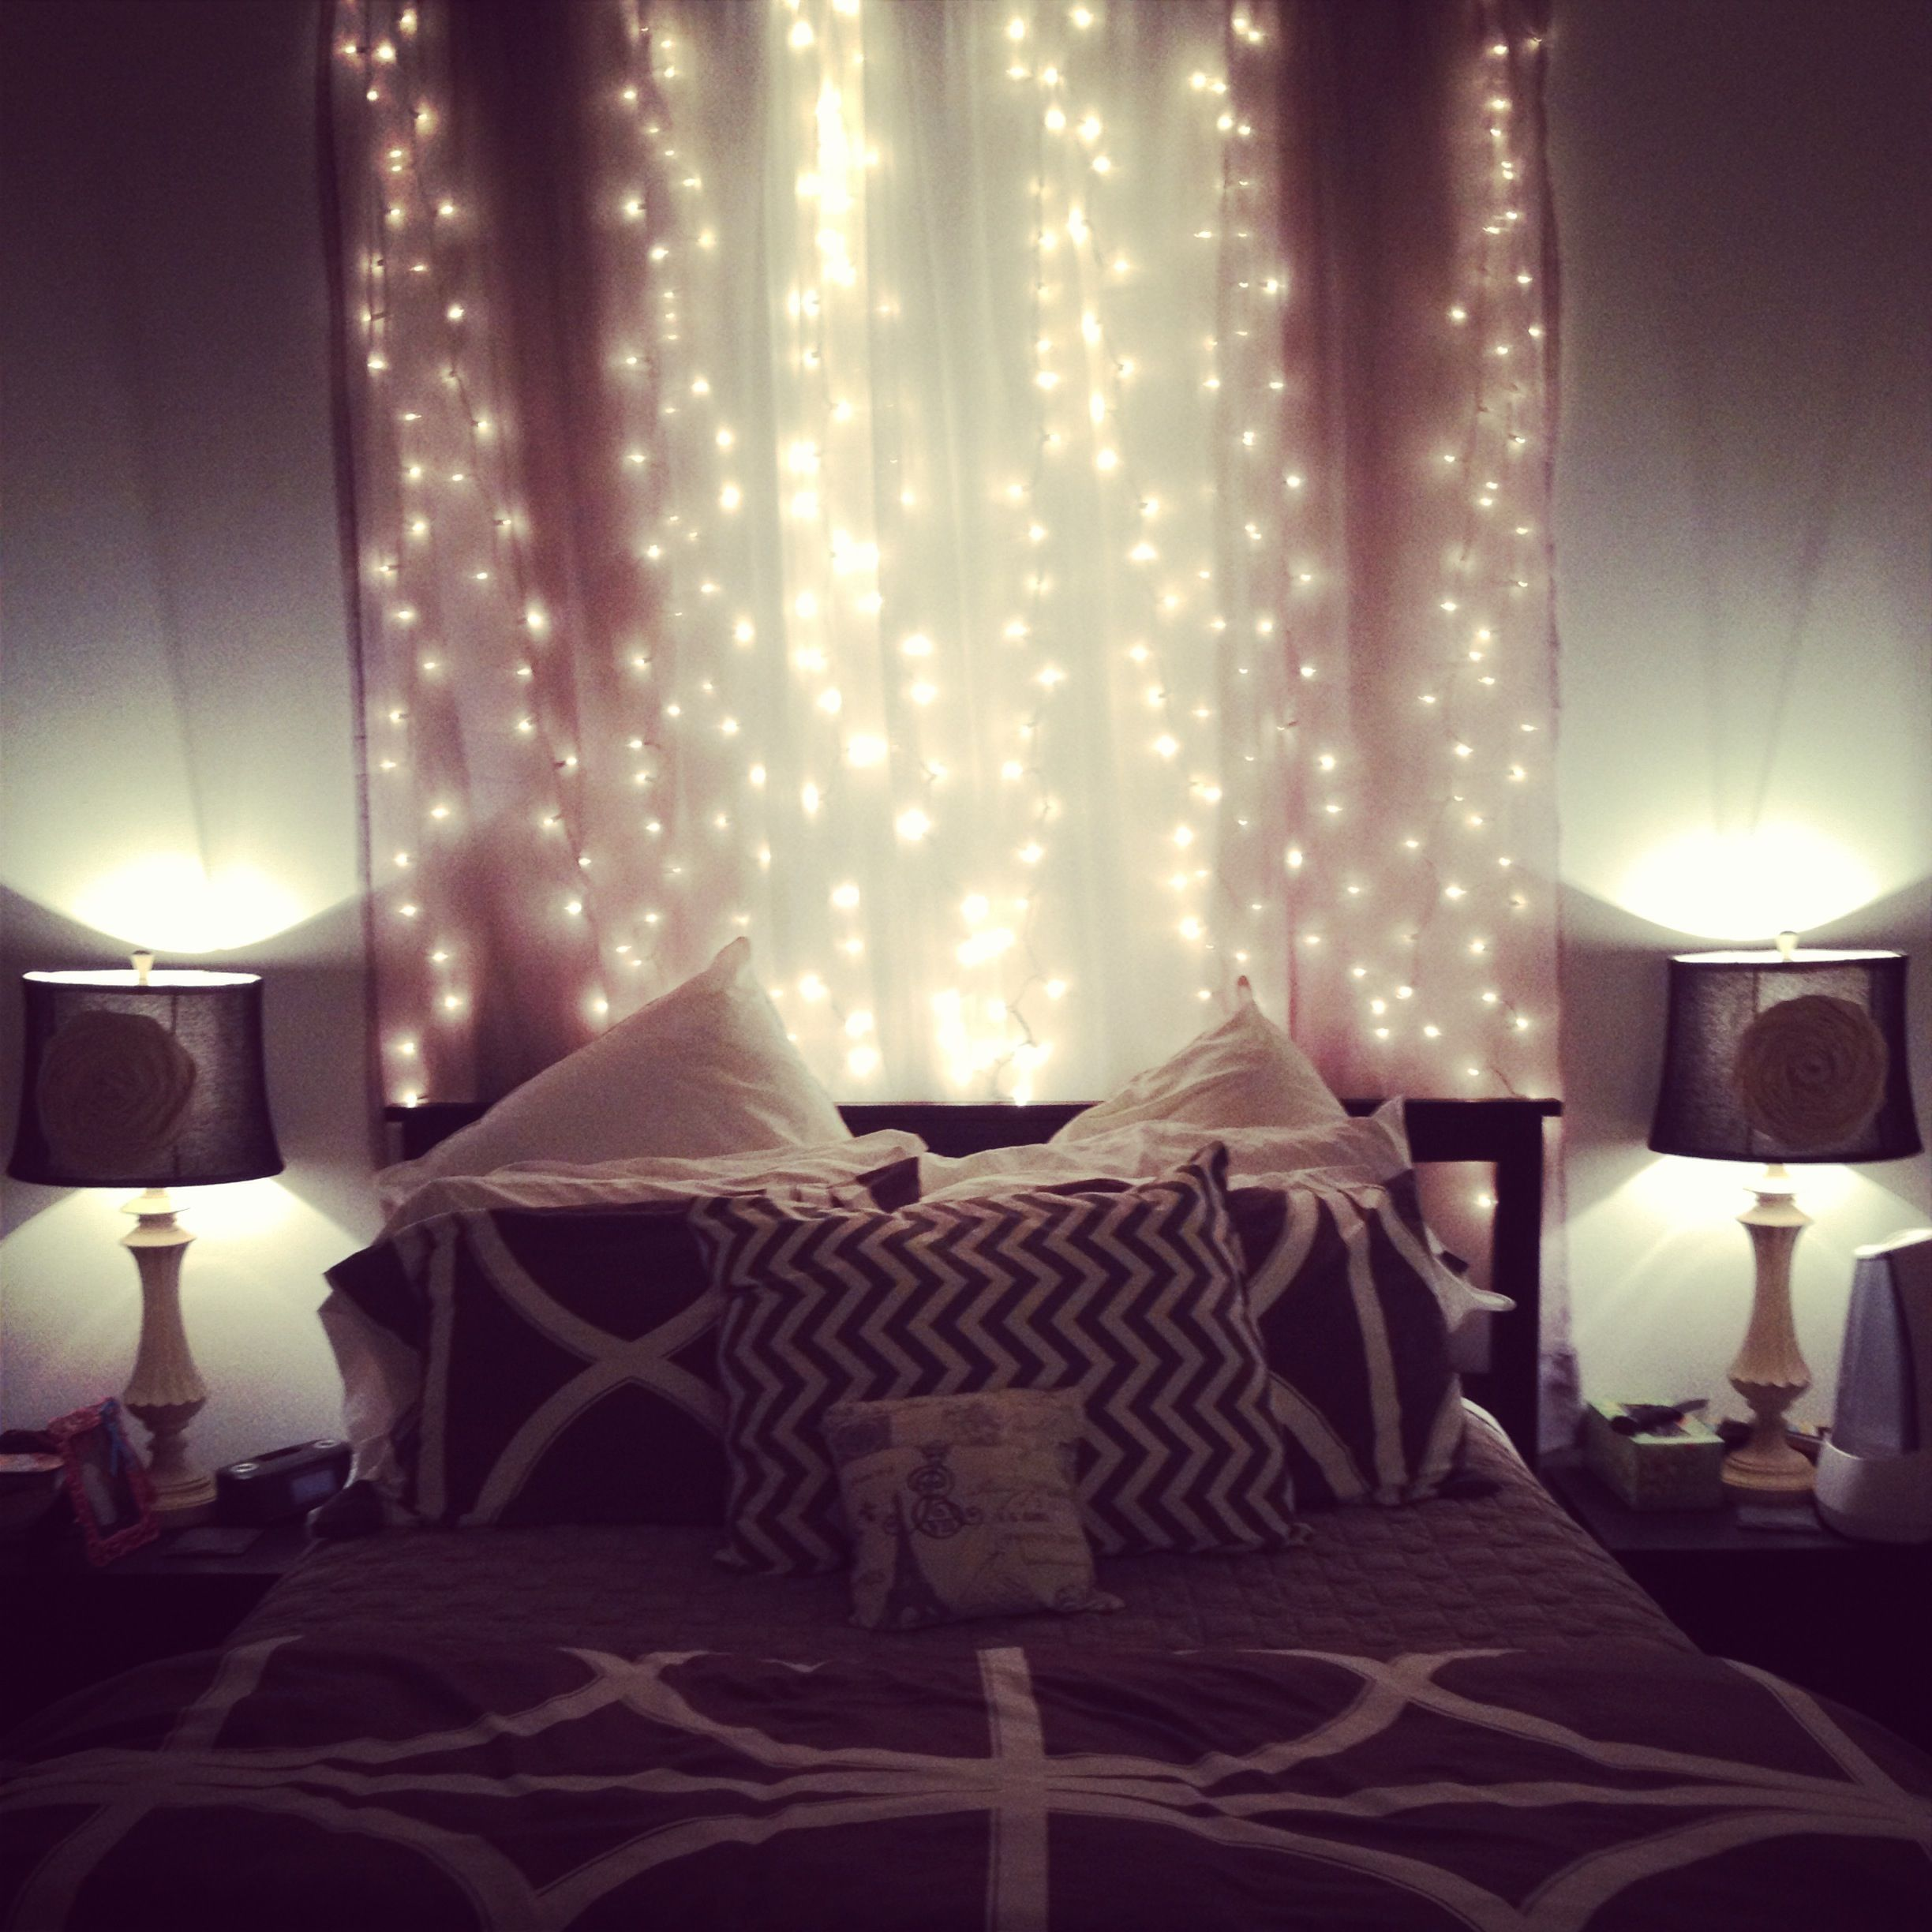 Fairy Lights In The Bedroom Olive S Board Pinterest